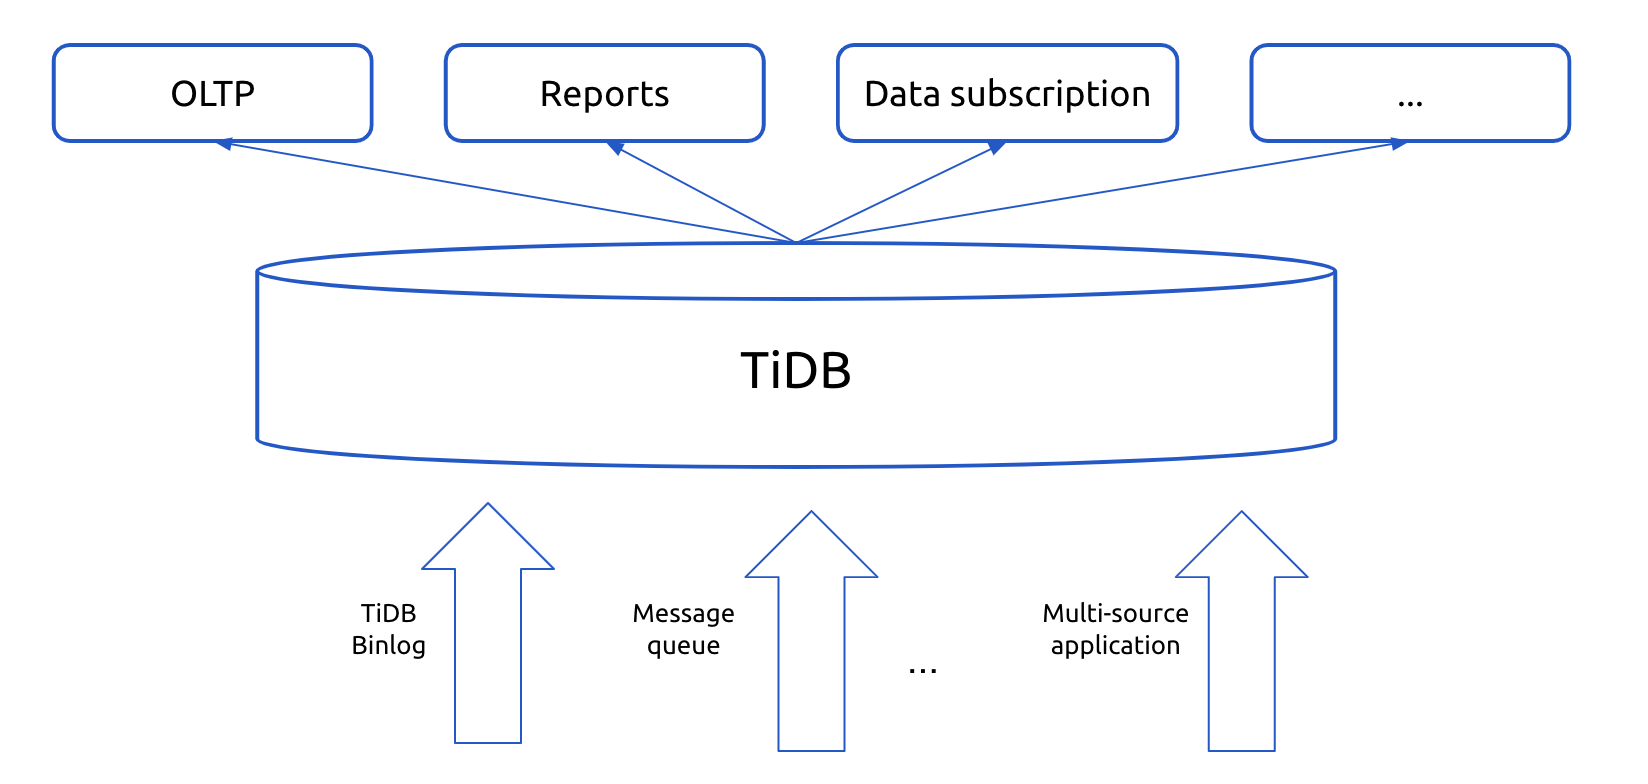 TiDB for the data hub